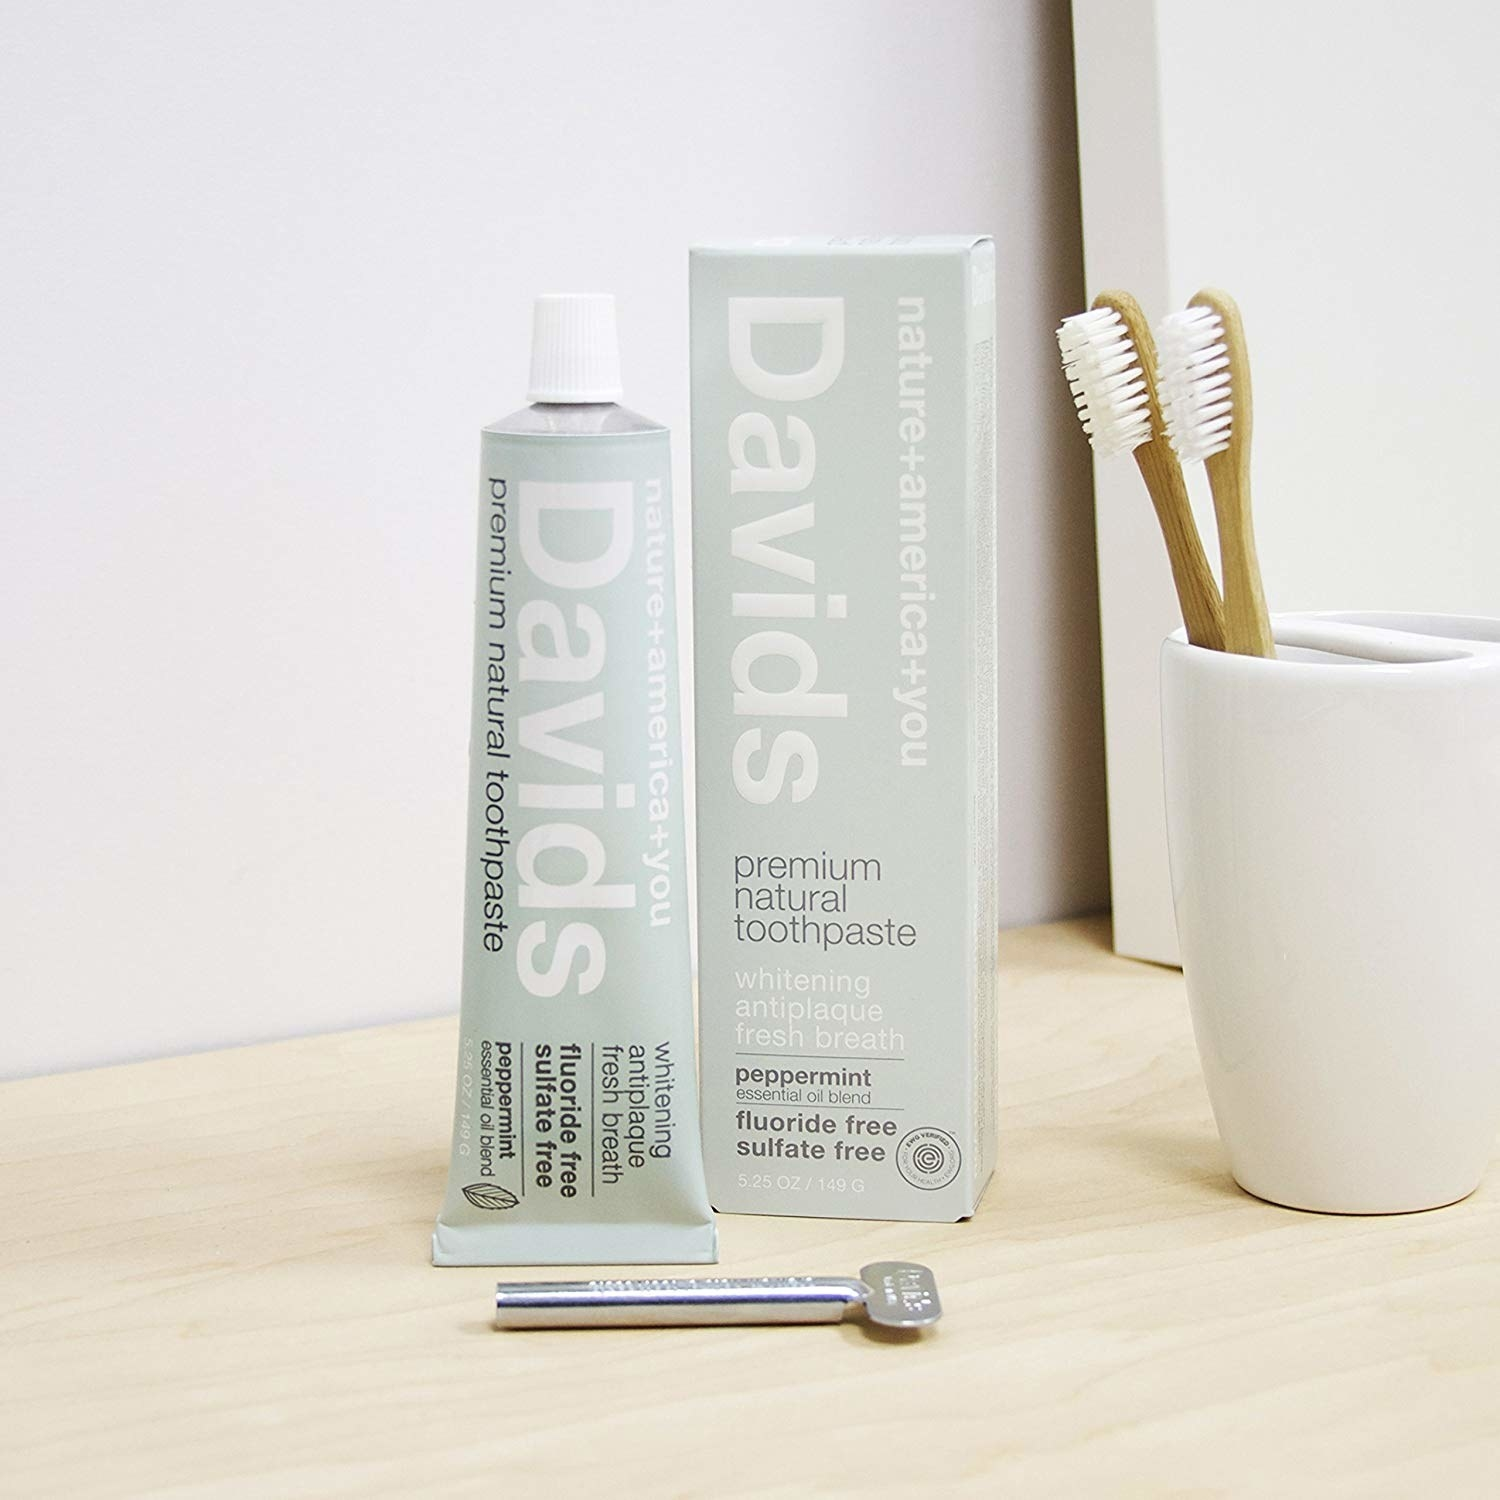 Pastel Davids toothpaste and tube roller